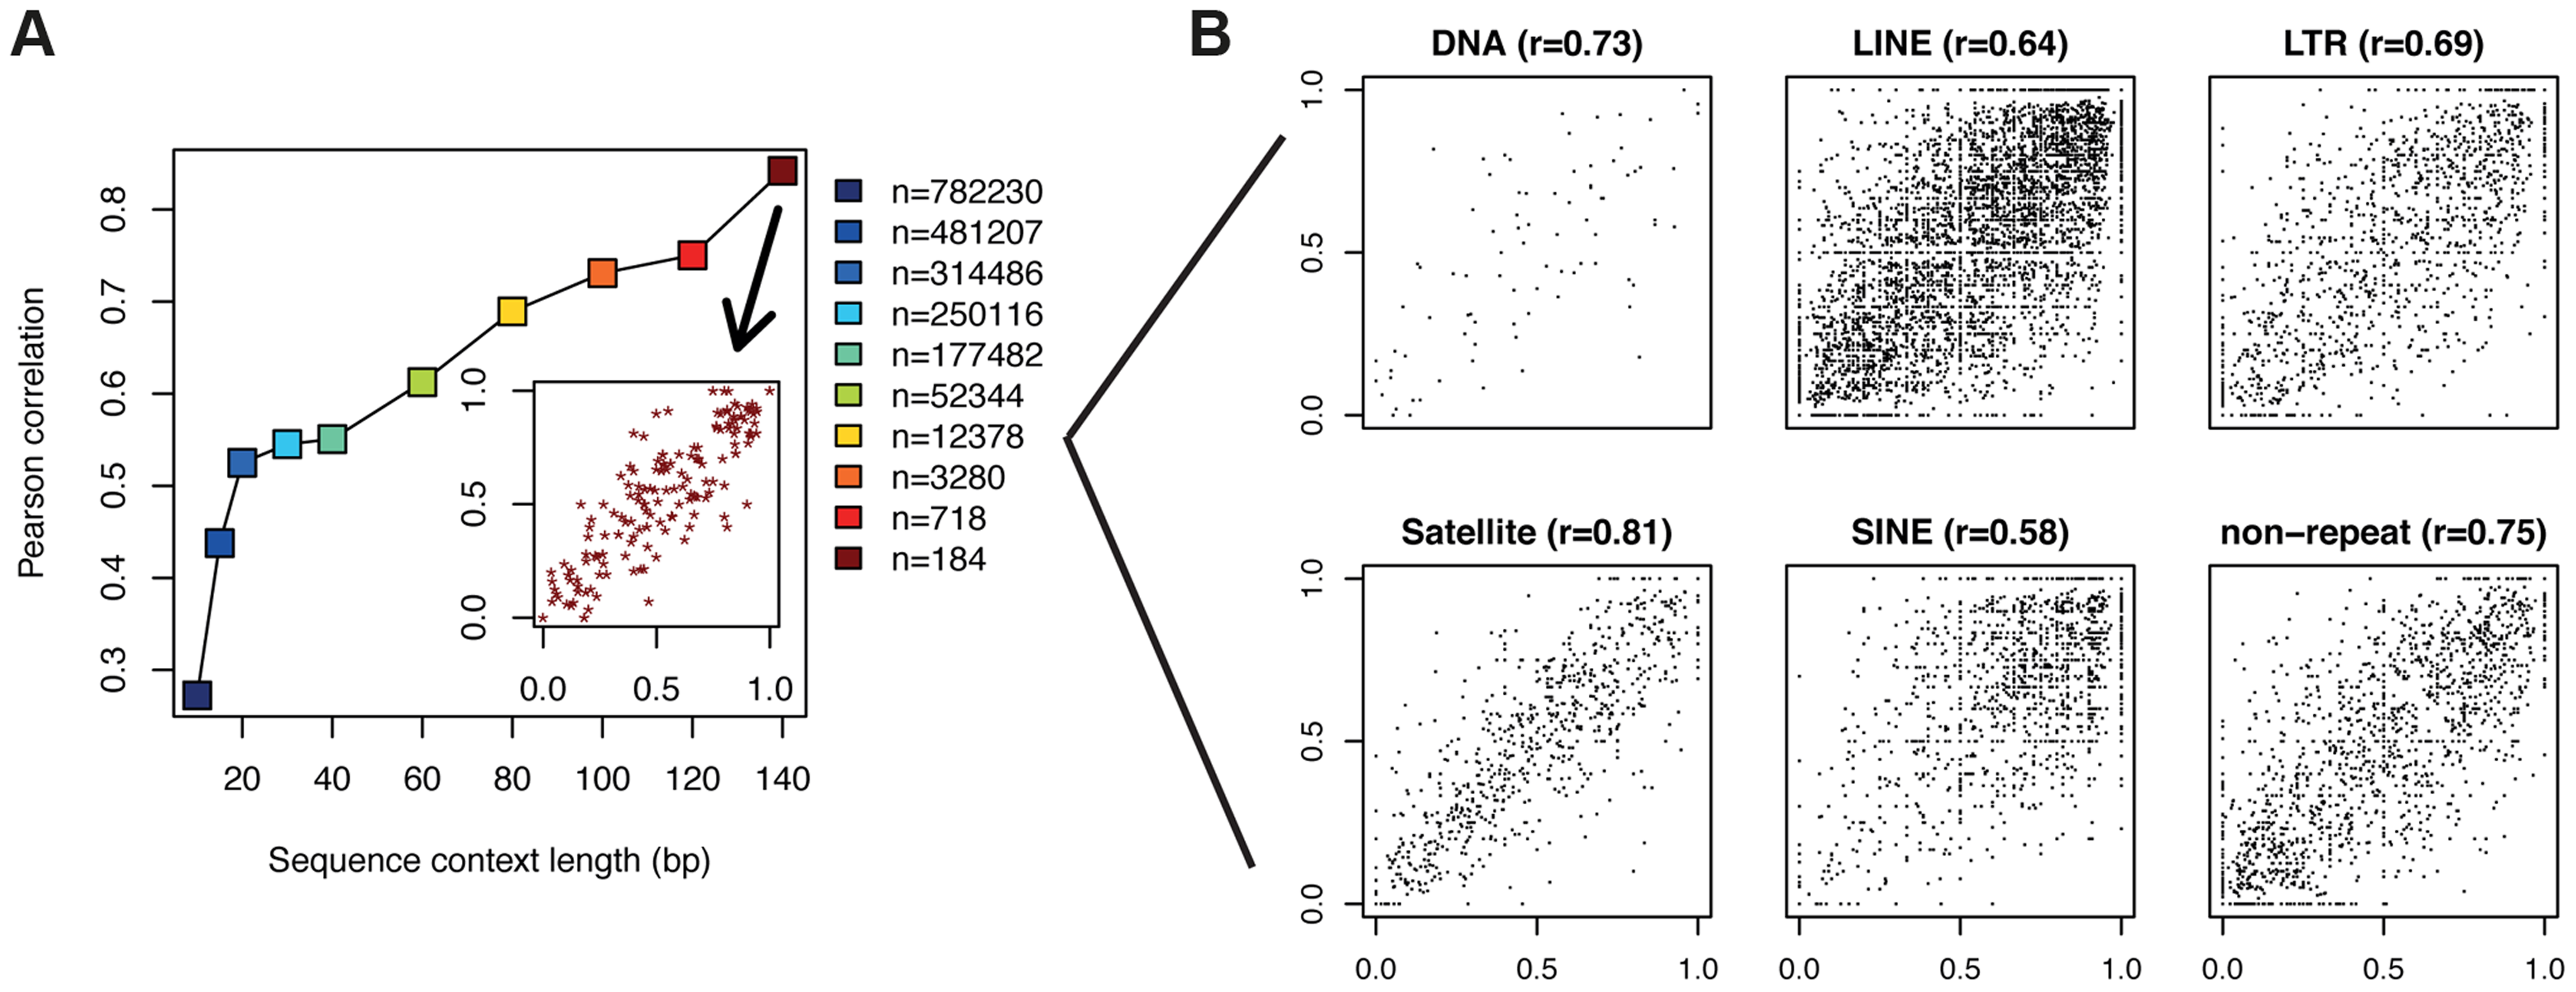 CpGs with identical flanking sequence display similar methylation.